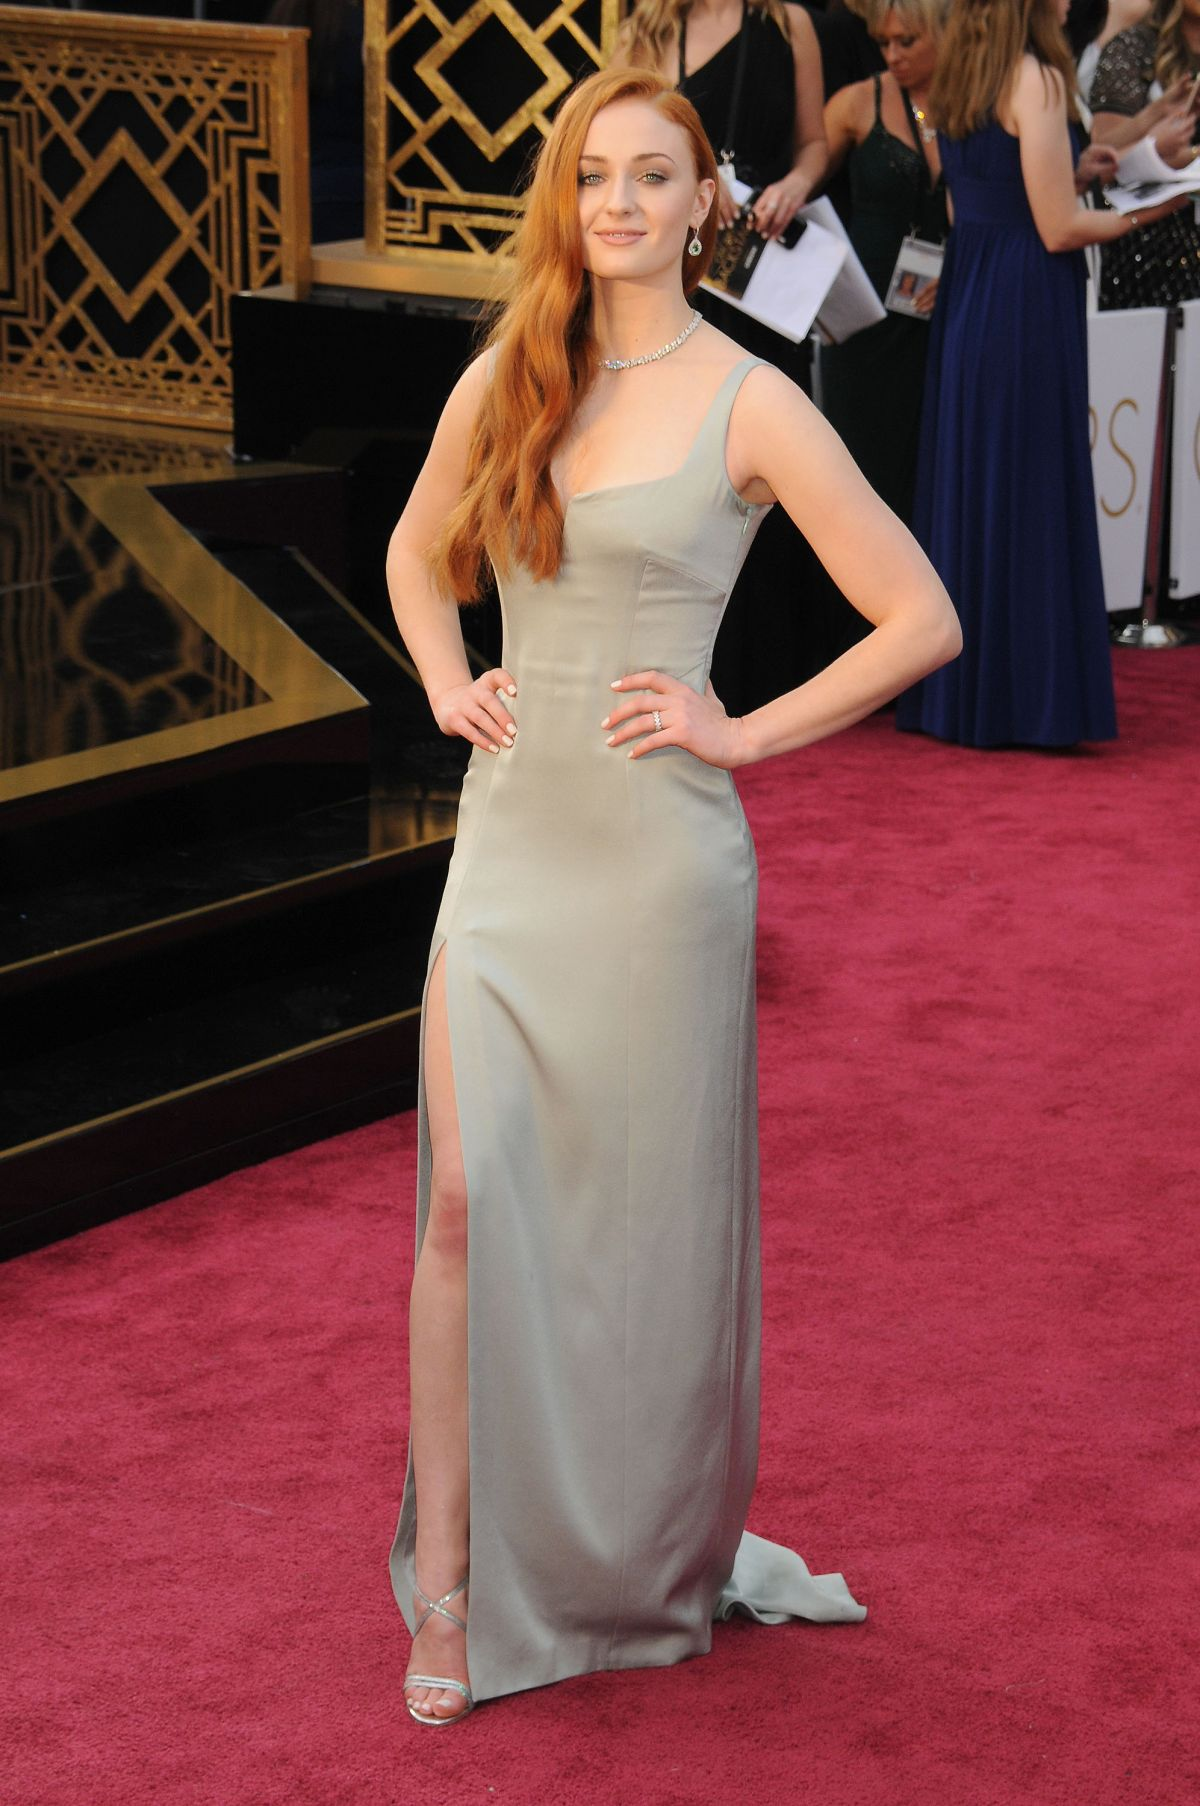 Sophie Turner At 88th Annual Academy Awards In Hollywood 02 28 2016 10 Hawtcelebs